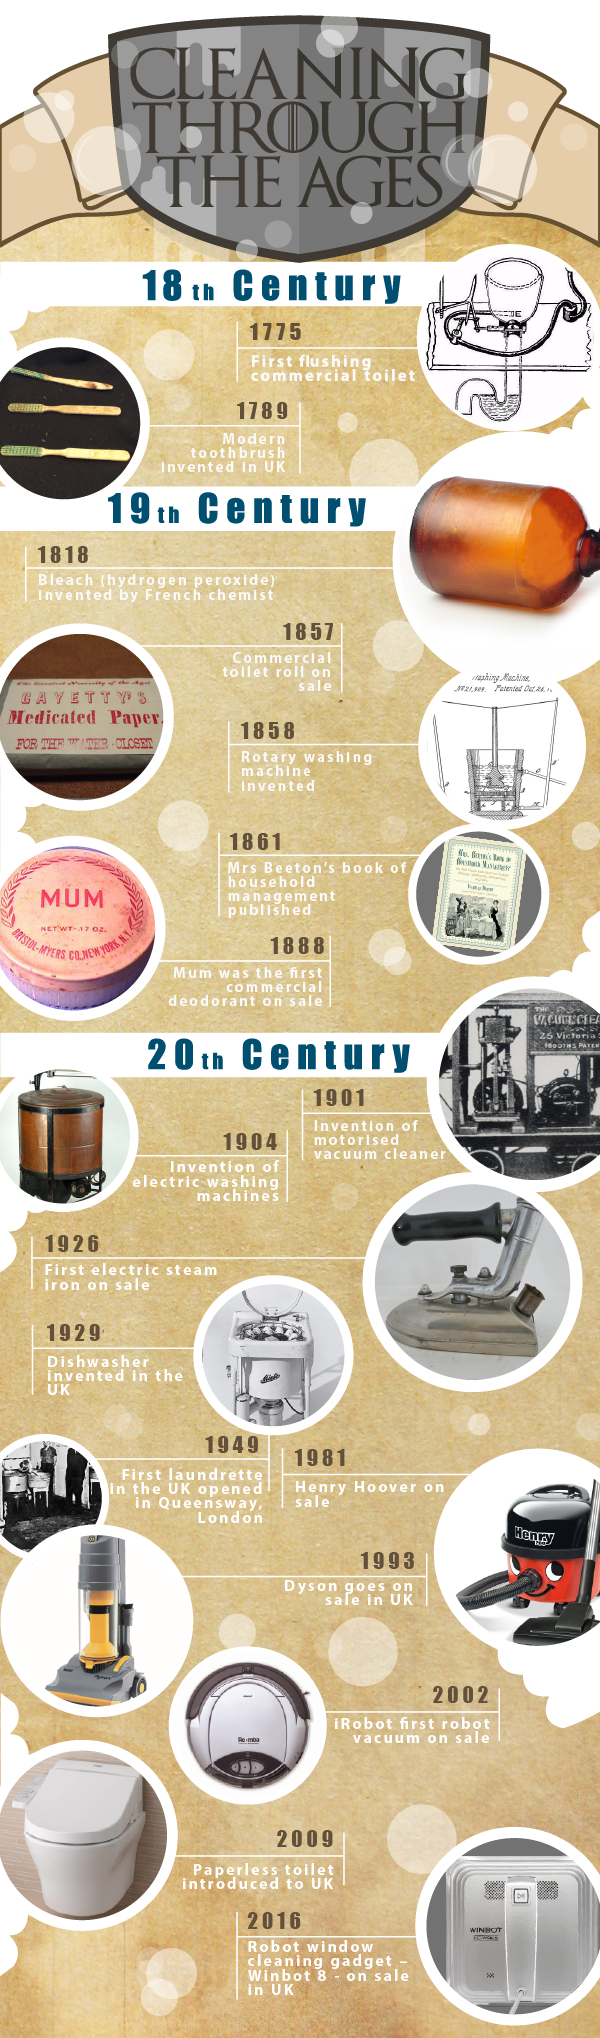 cleaning-timeline-infographic